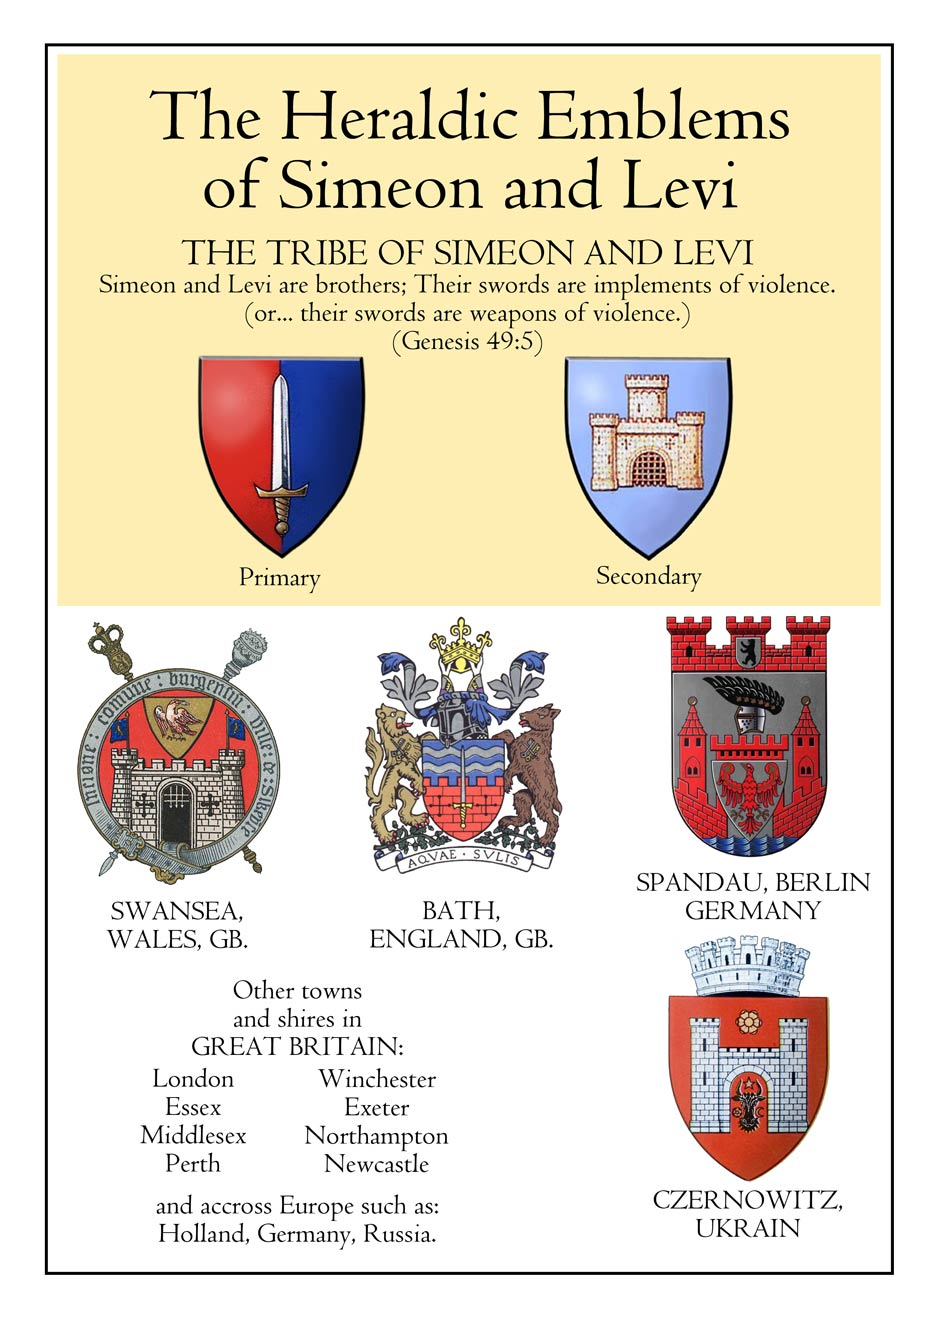 Emblems of the Tribes of Simeon and Levi